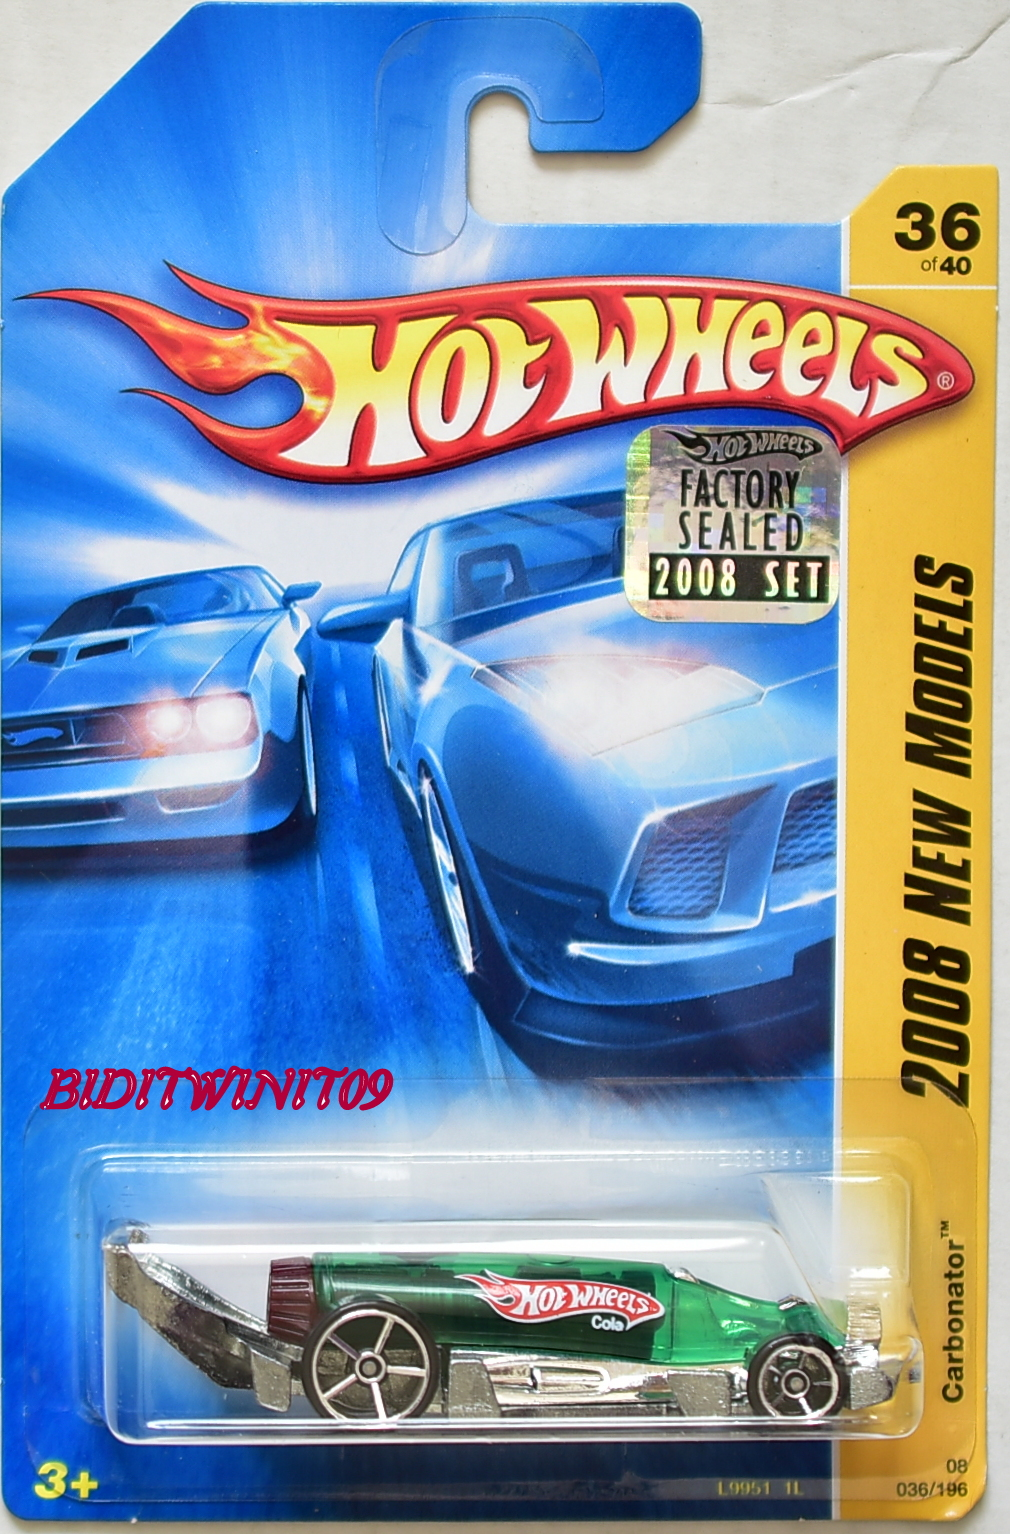 HOT WHEELS 2008 NEW MODELS CARBONATOR GREEN FACTORY SEALED